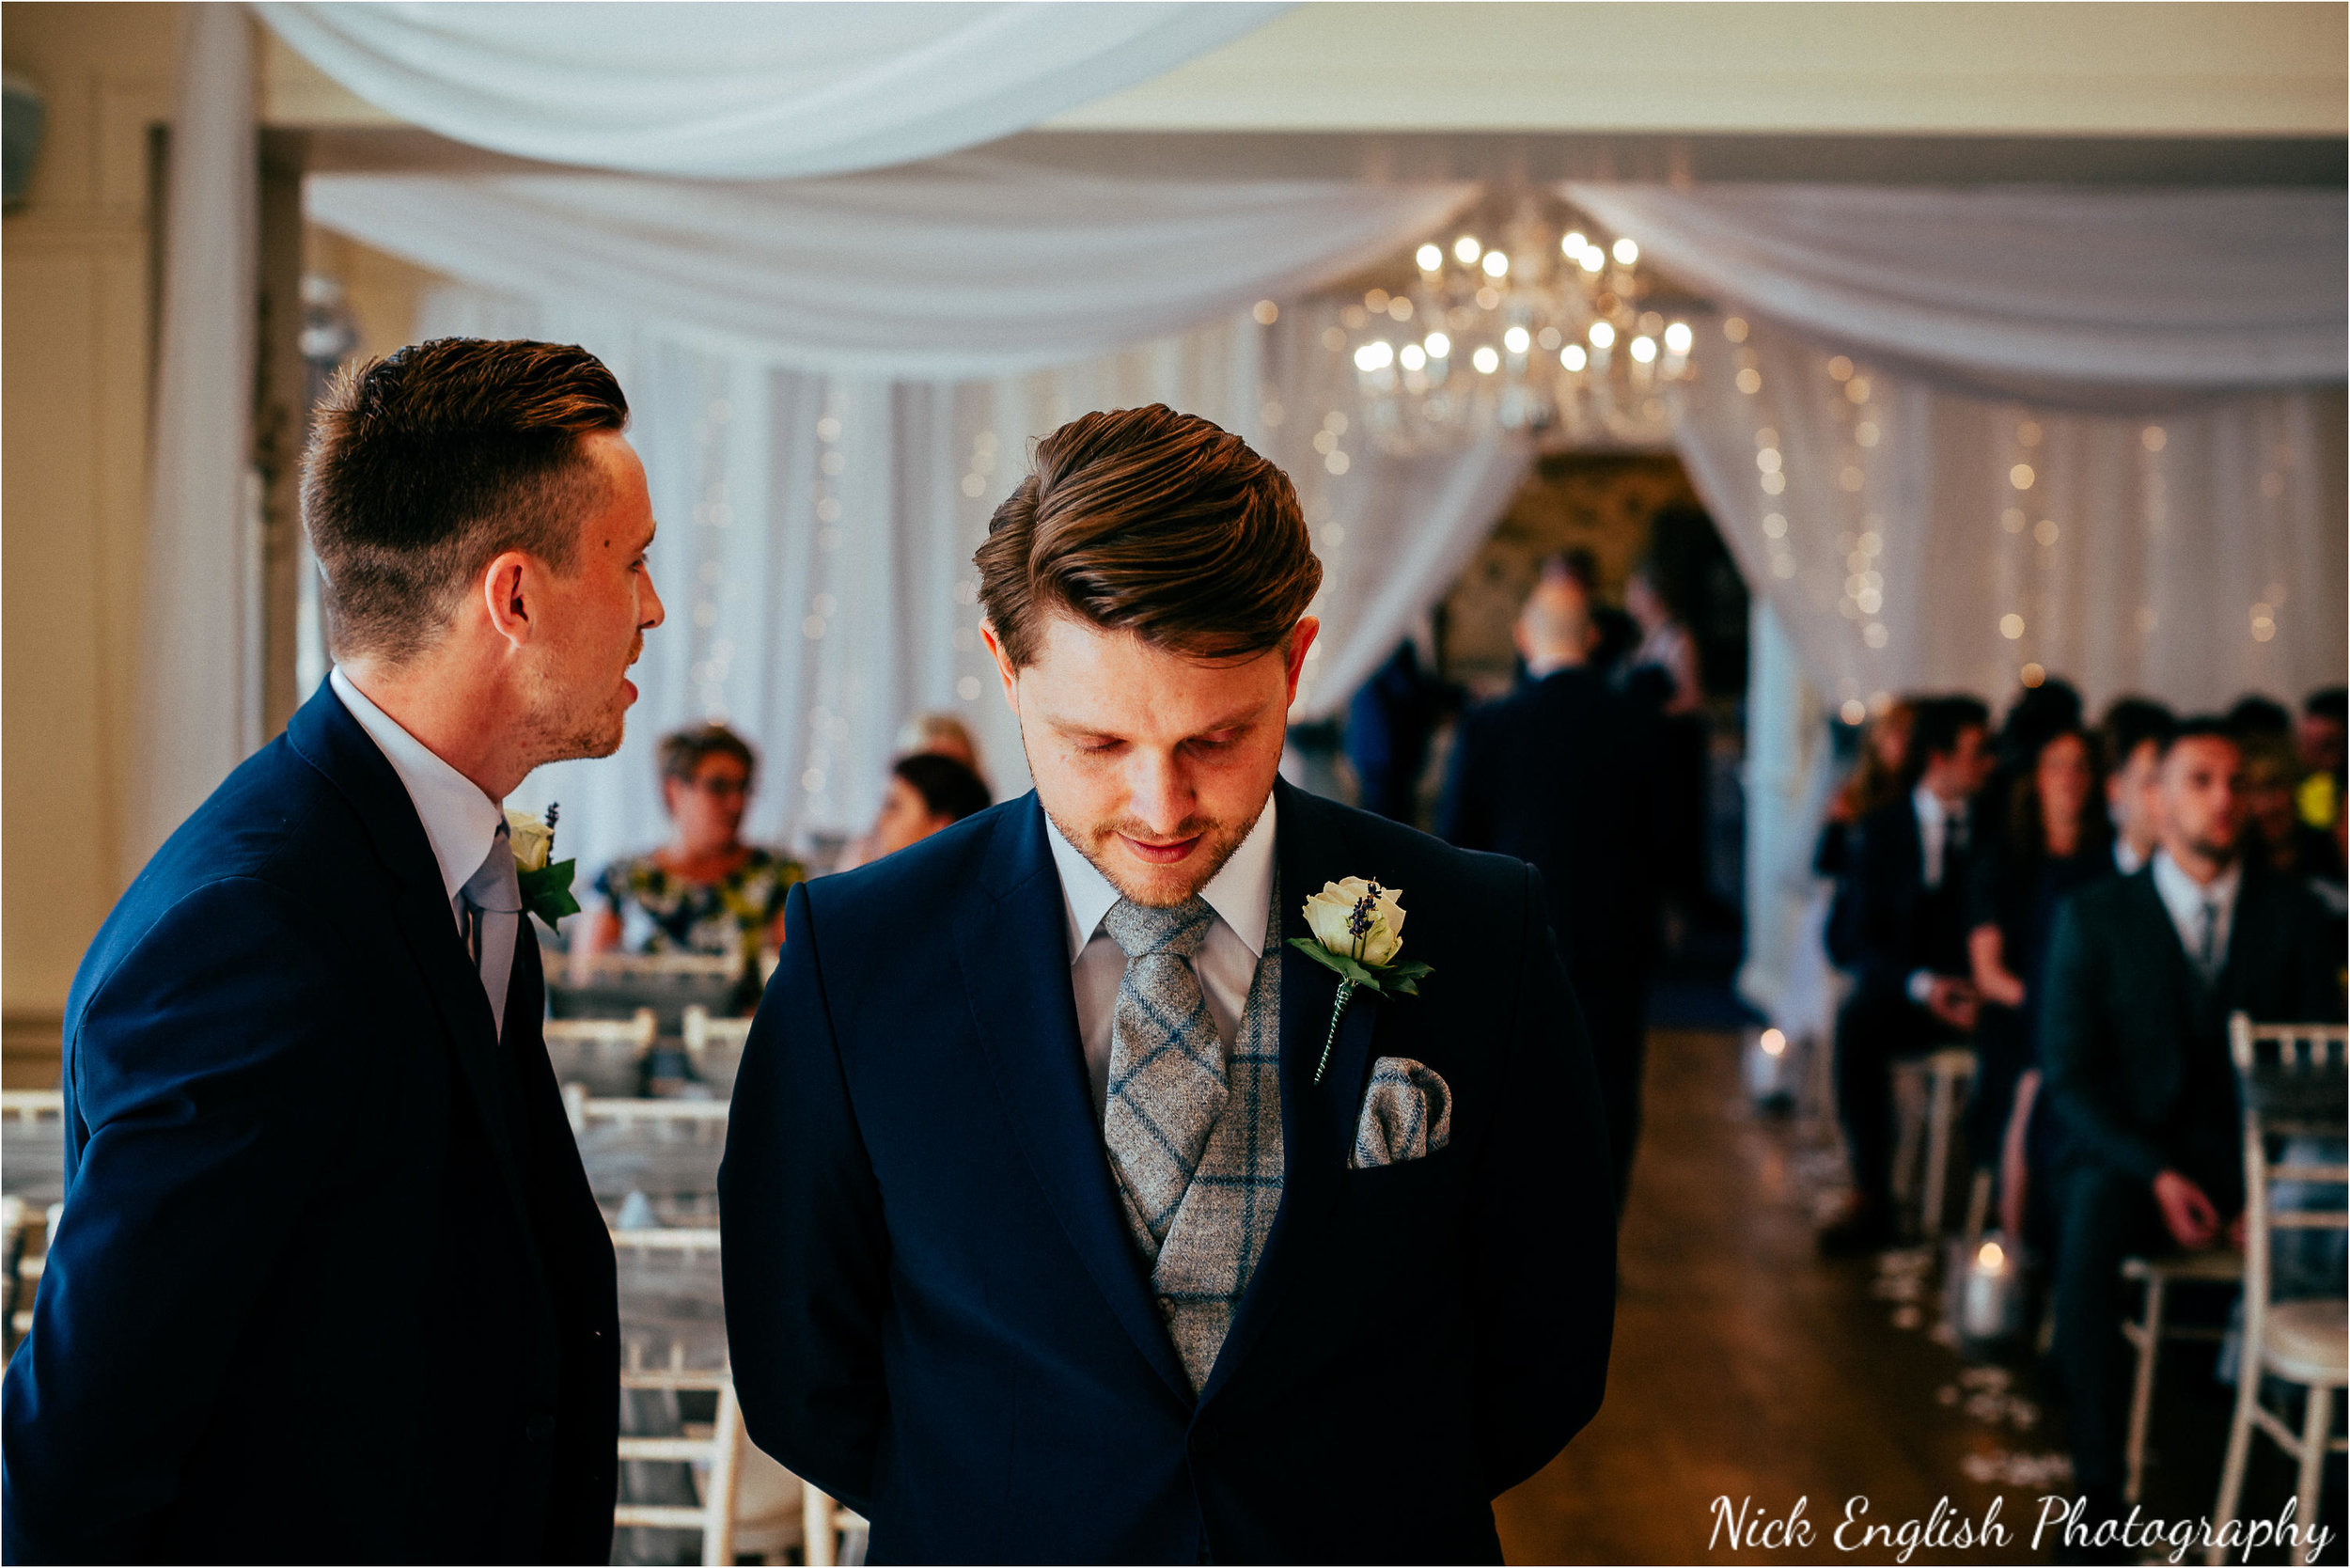 Eaves_Hall_Wedding_Photographs_Nick_English_Photography-87.jpg